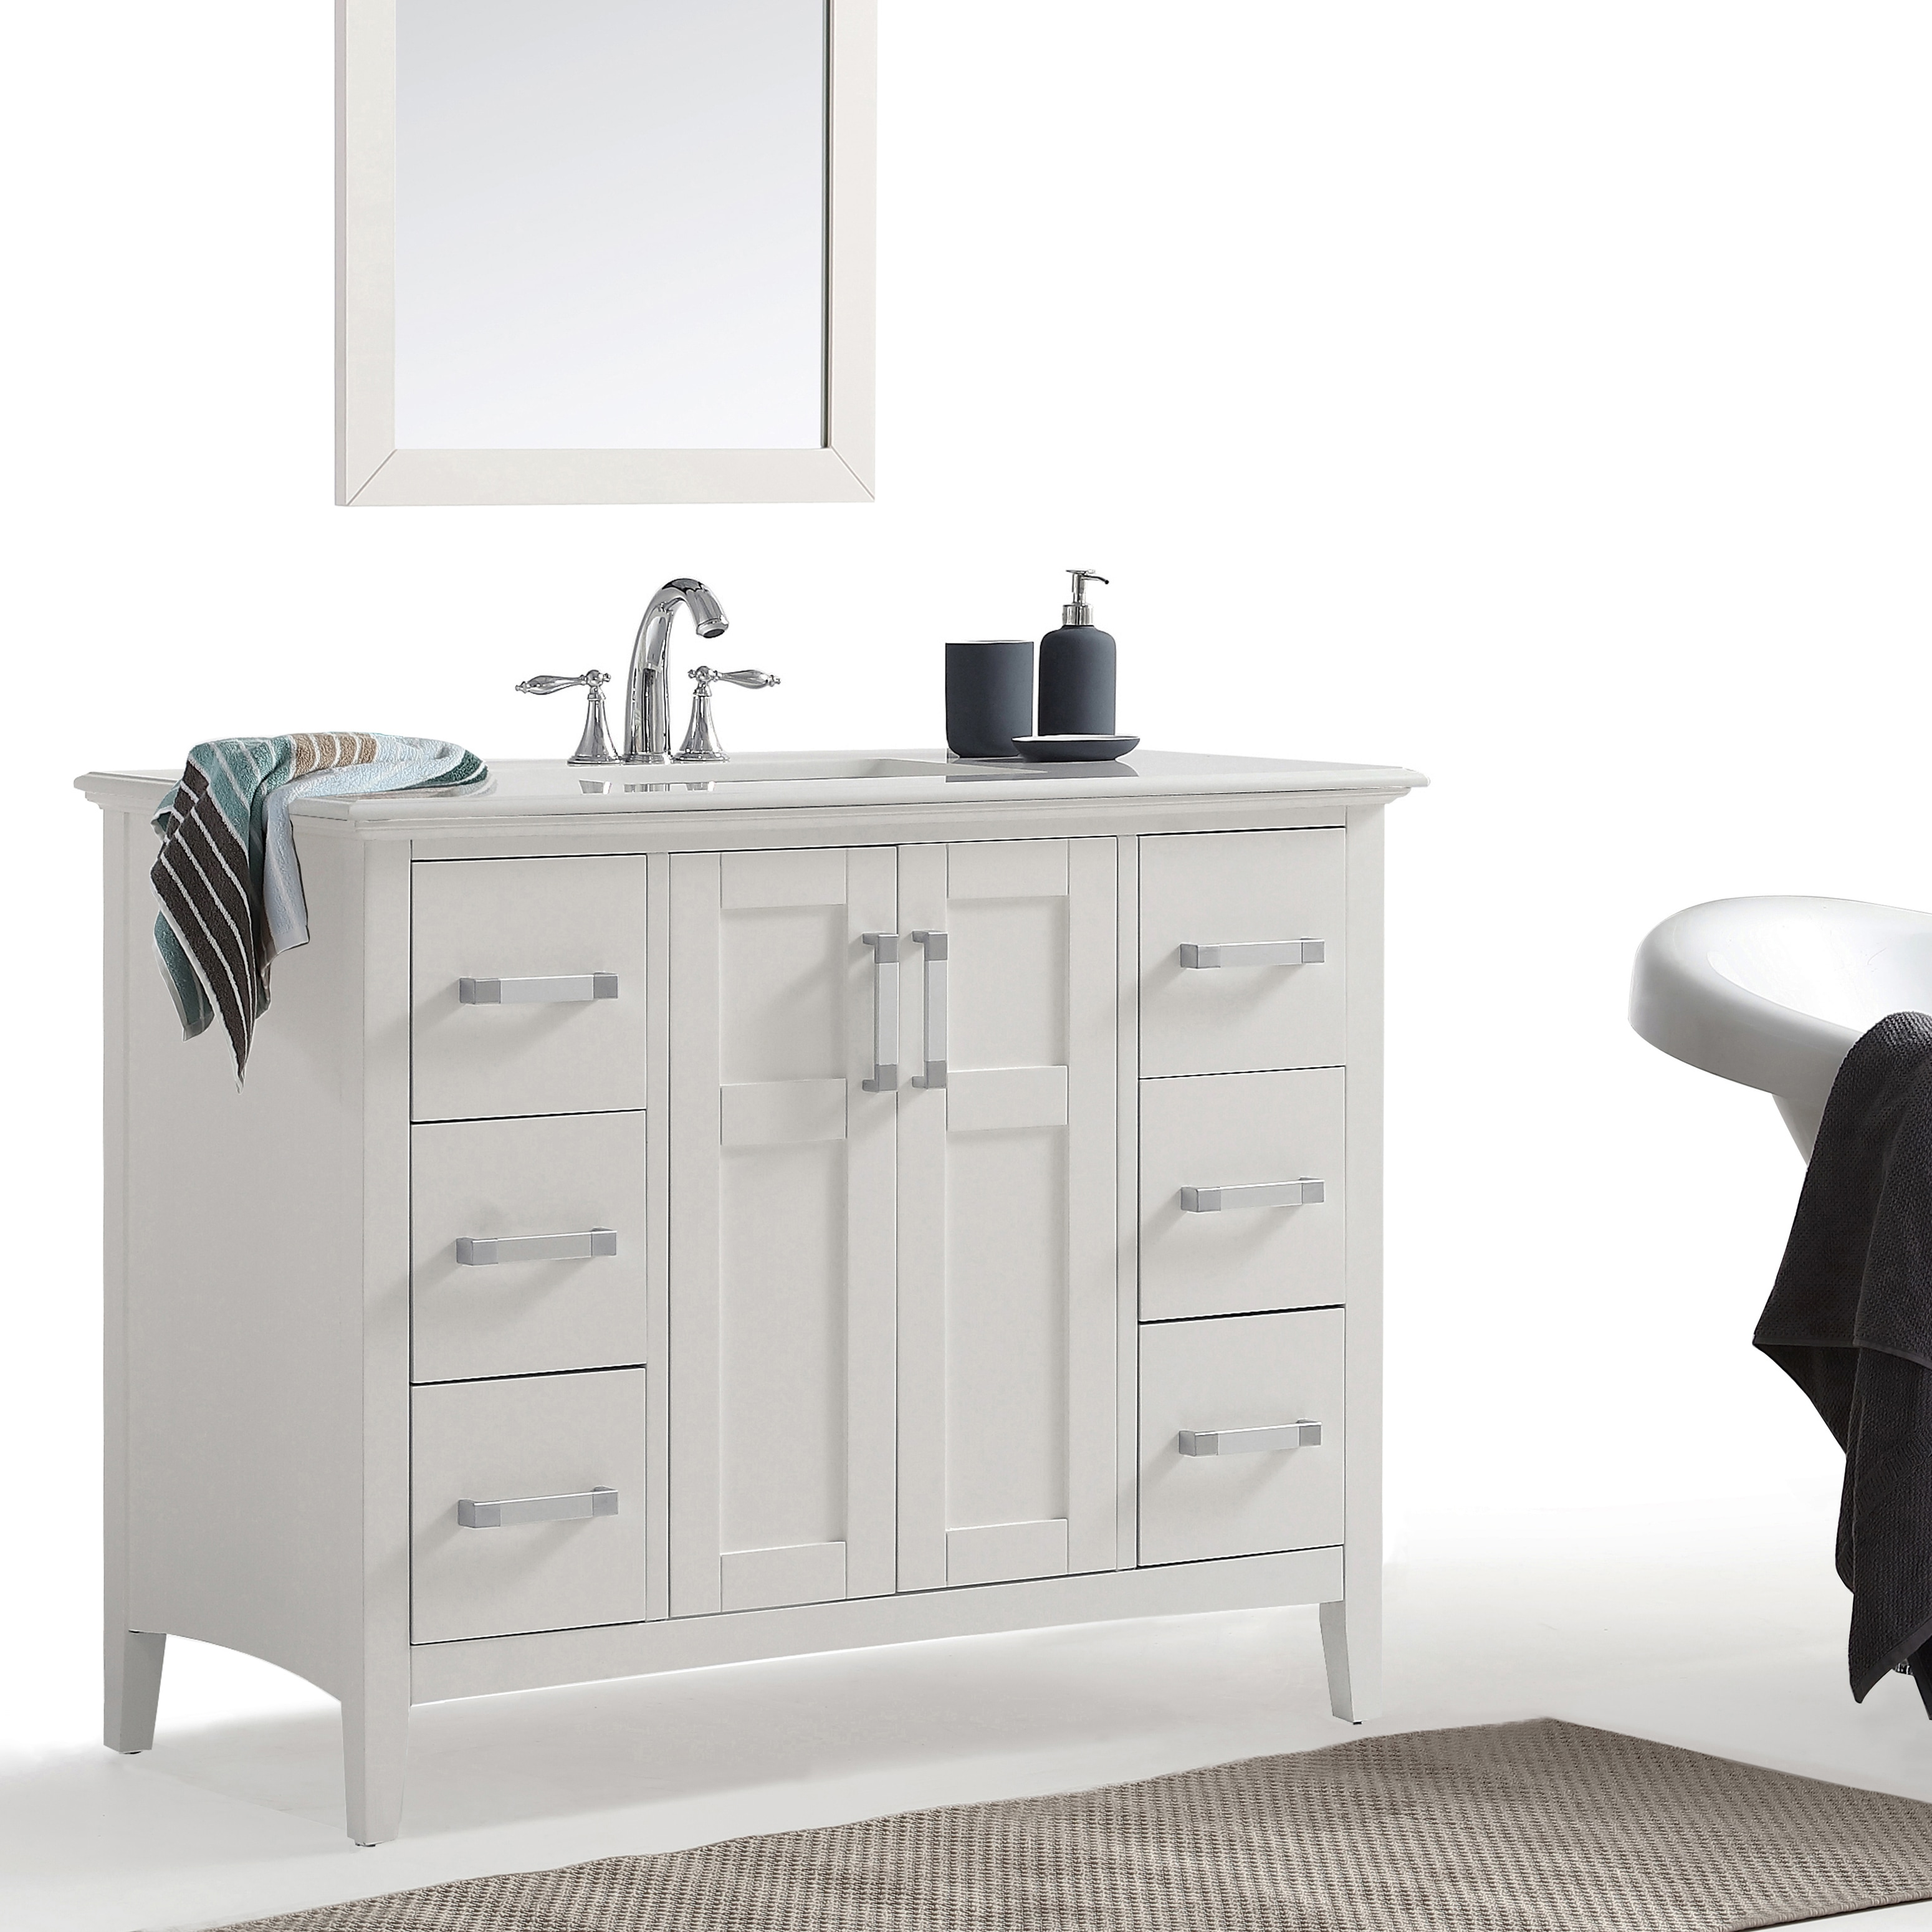 shop wyndenhall salem 42 inch bath vanity in white with white quartz marble top on sale free shipping today overstockcom 13933054 - 42 Inch Bathroom Vanity